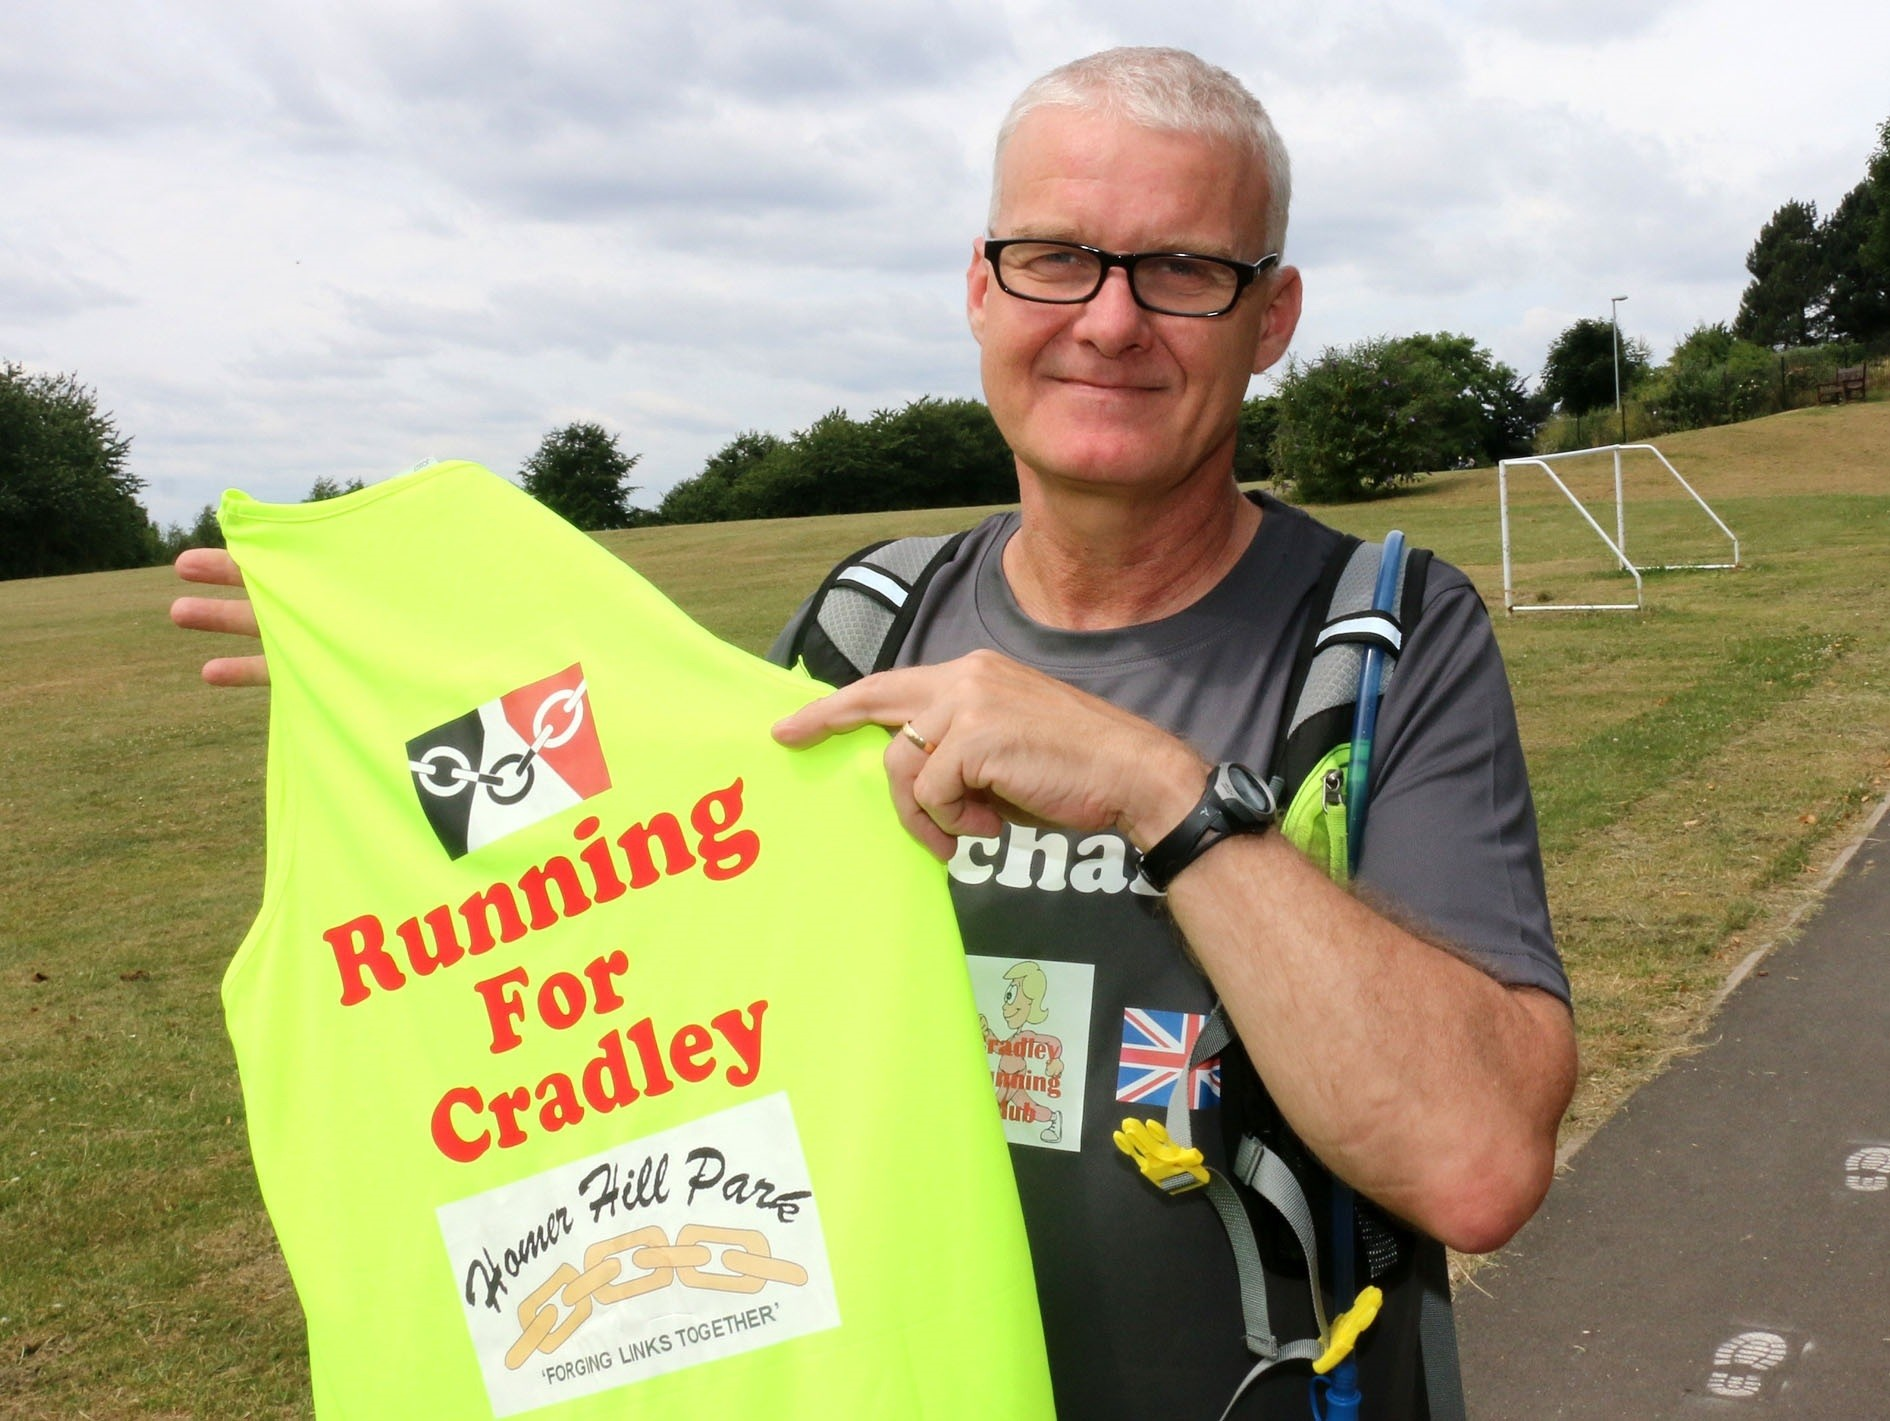 Richard Body only took up running in August 2016 and already is running a 53 mile Ultra